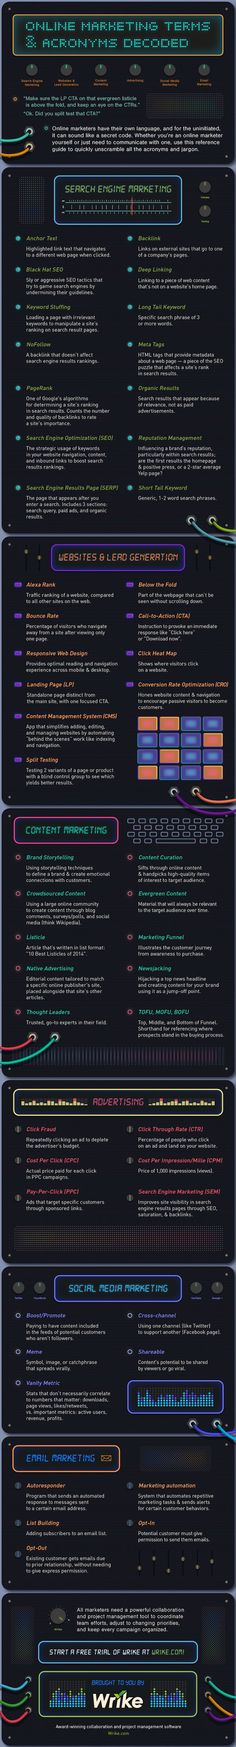 Email, SEO, Content Marketing, Advertising, Social Media: A-Z Glossary of Online Marketing Terms - #Infographic #digitalmarketing #terminology